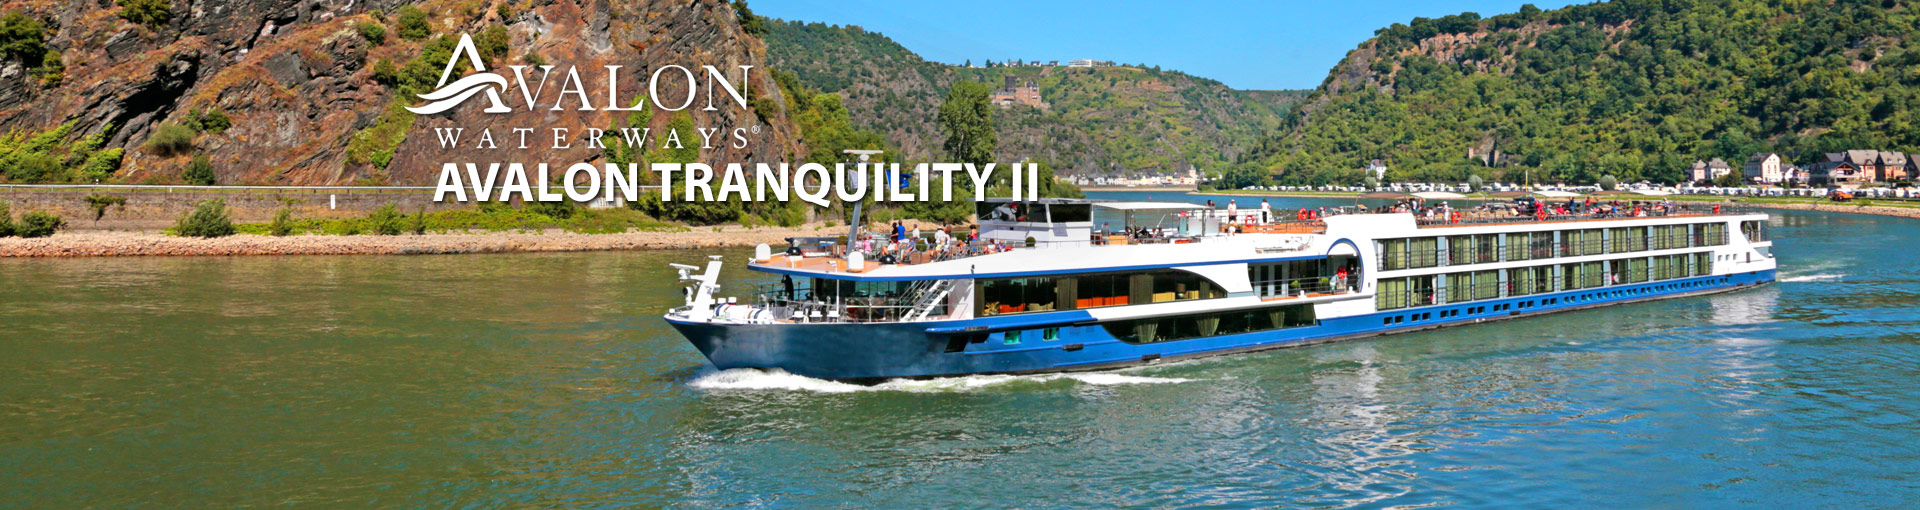 Avalon Tranquility II River Cruise Ship